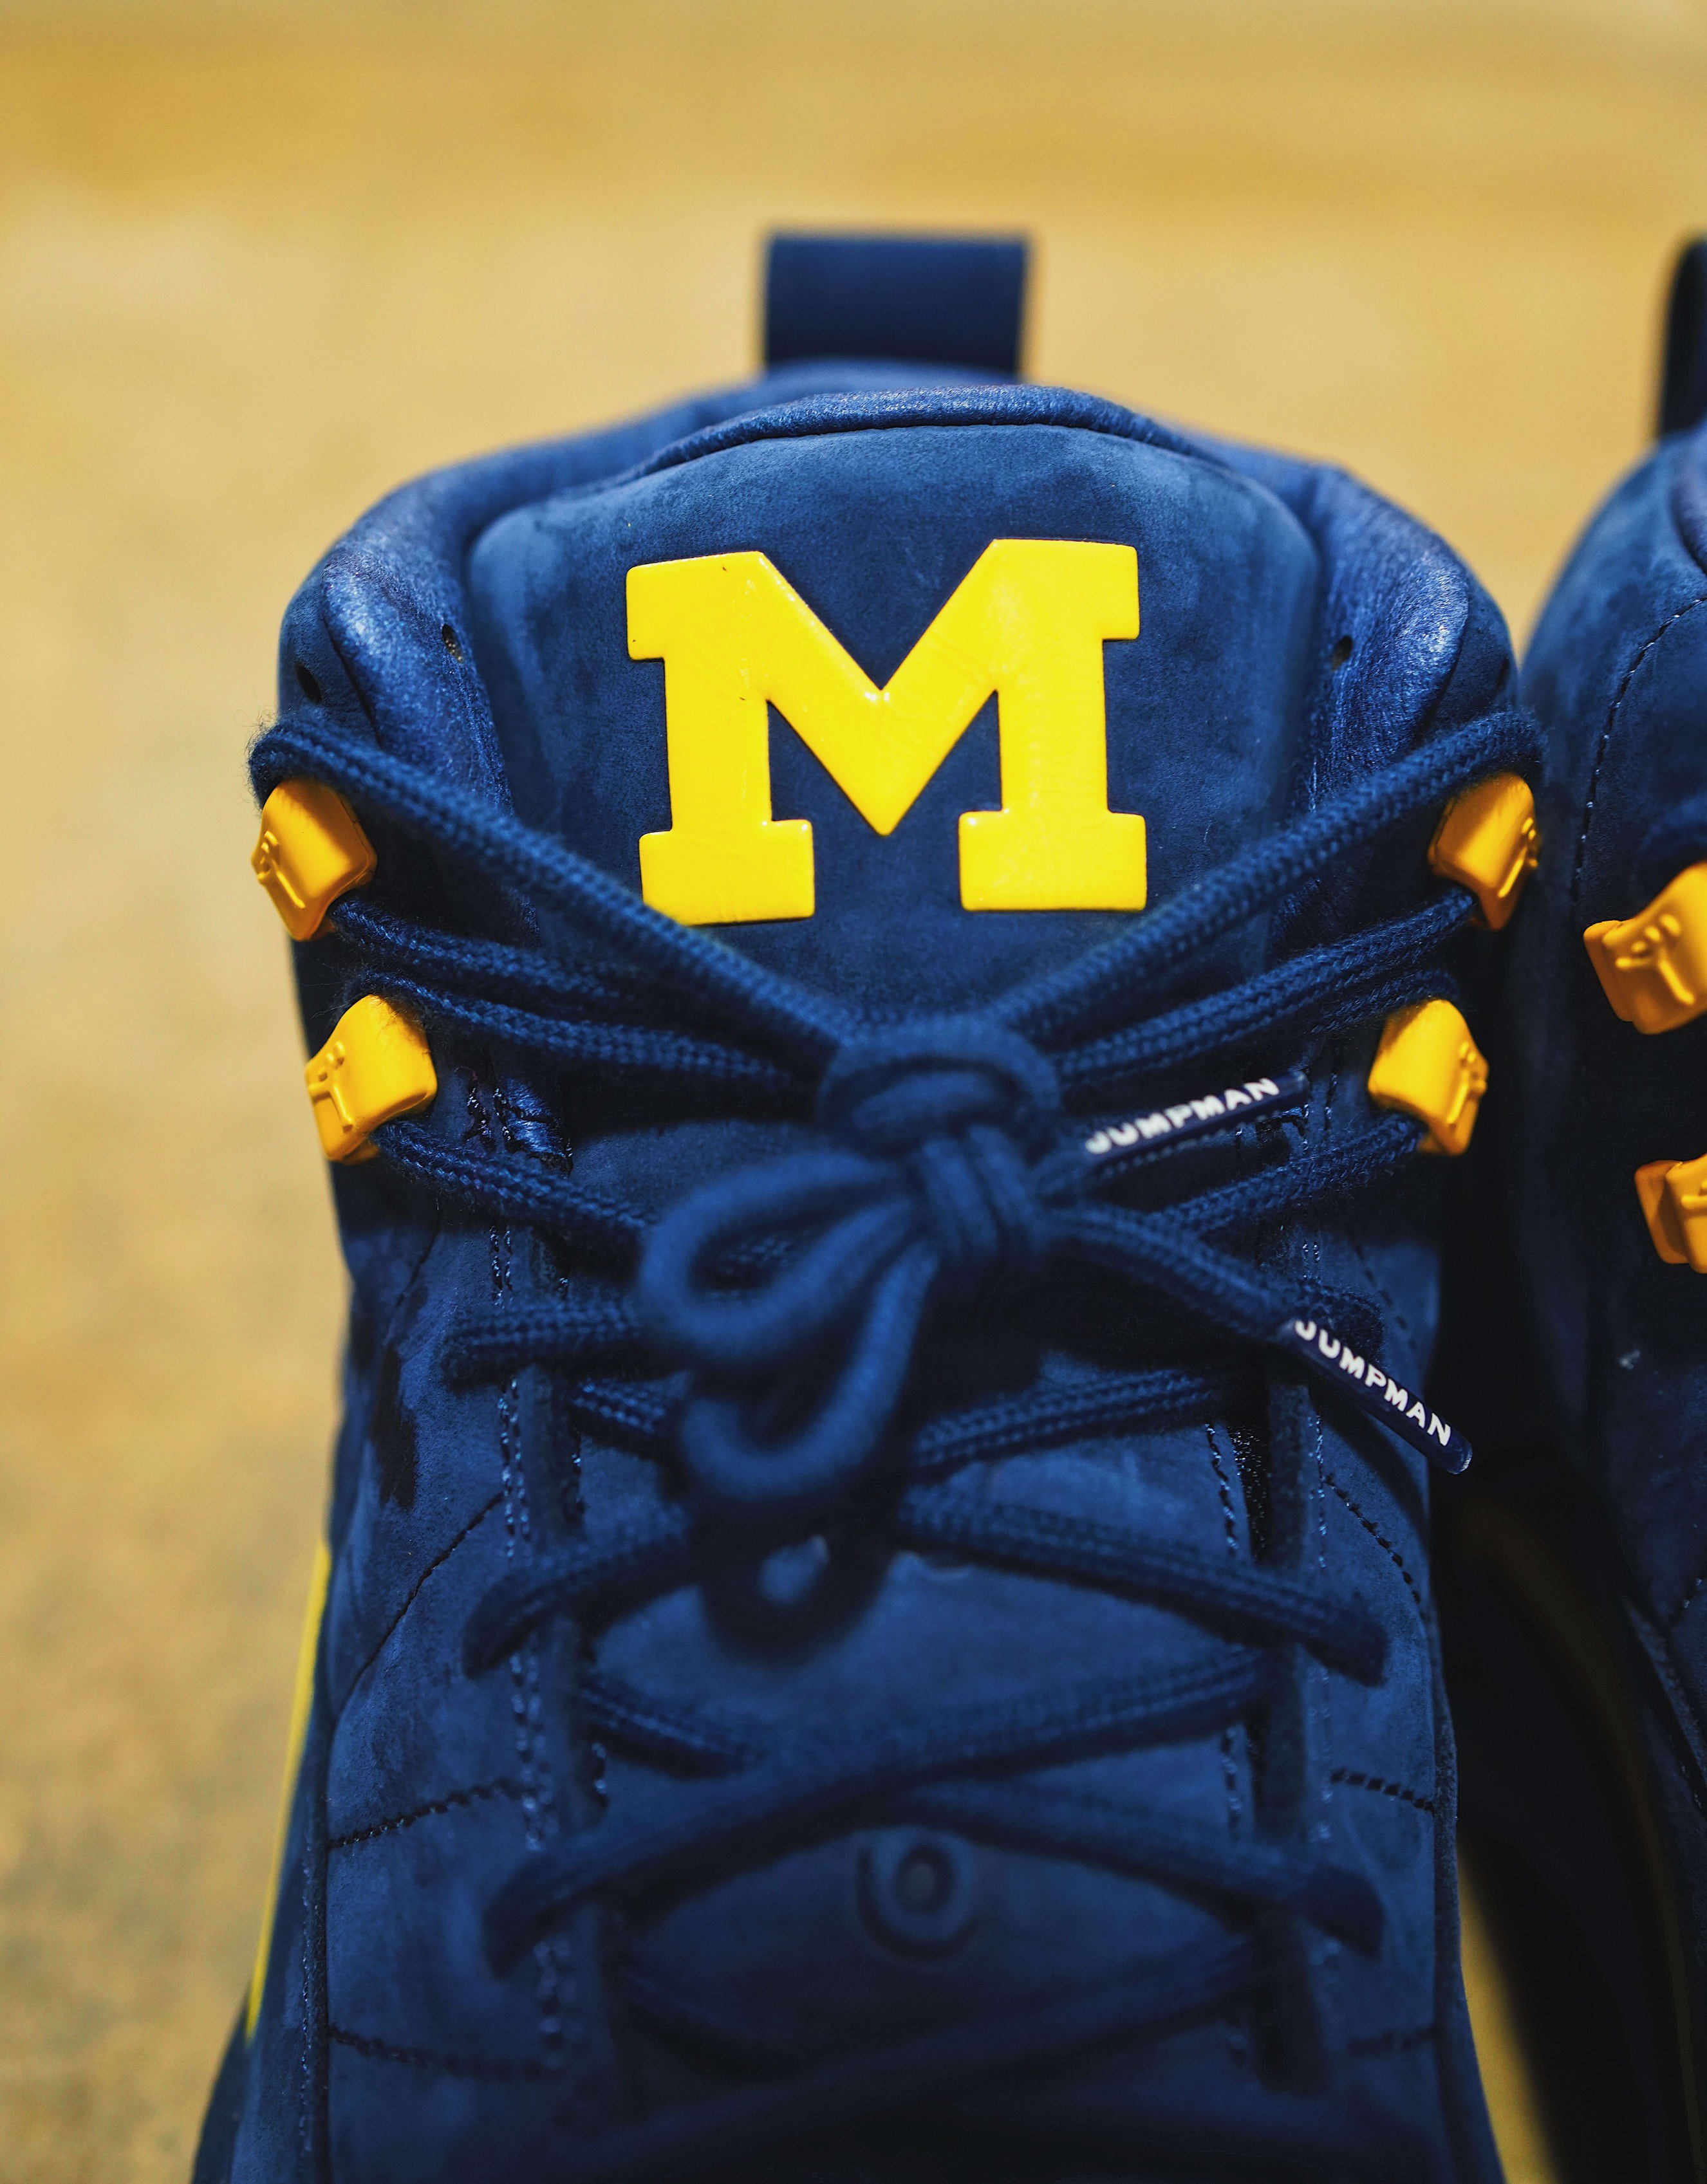 Air Jordan 12 'Michigan' BQ3180-407 (Tongue)